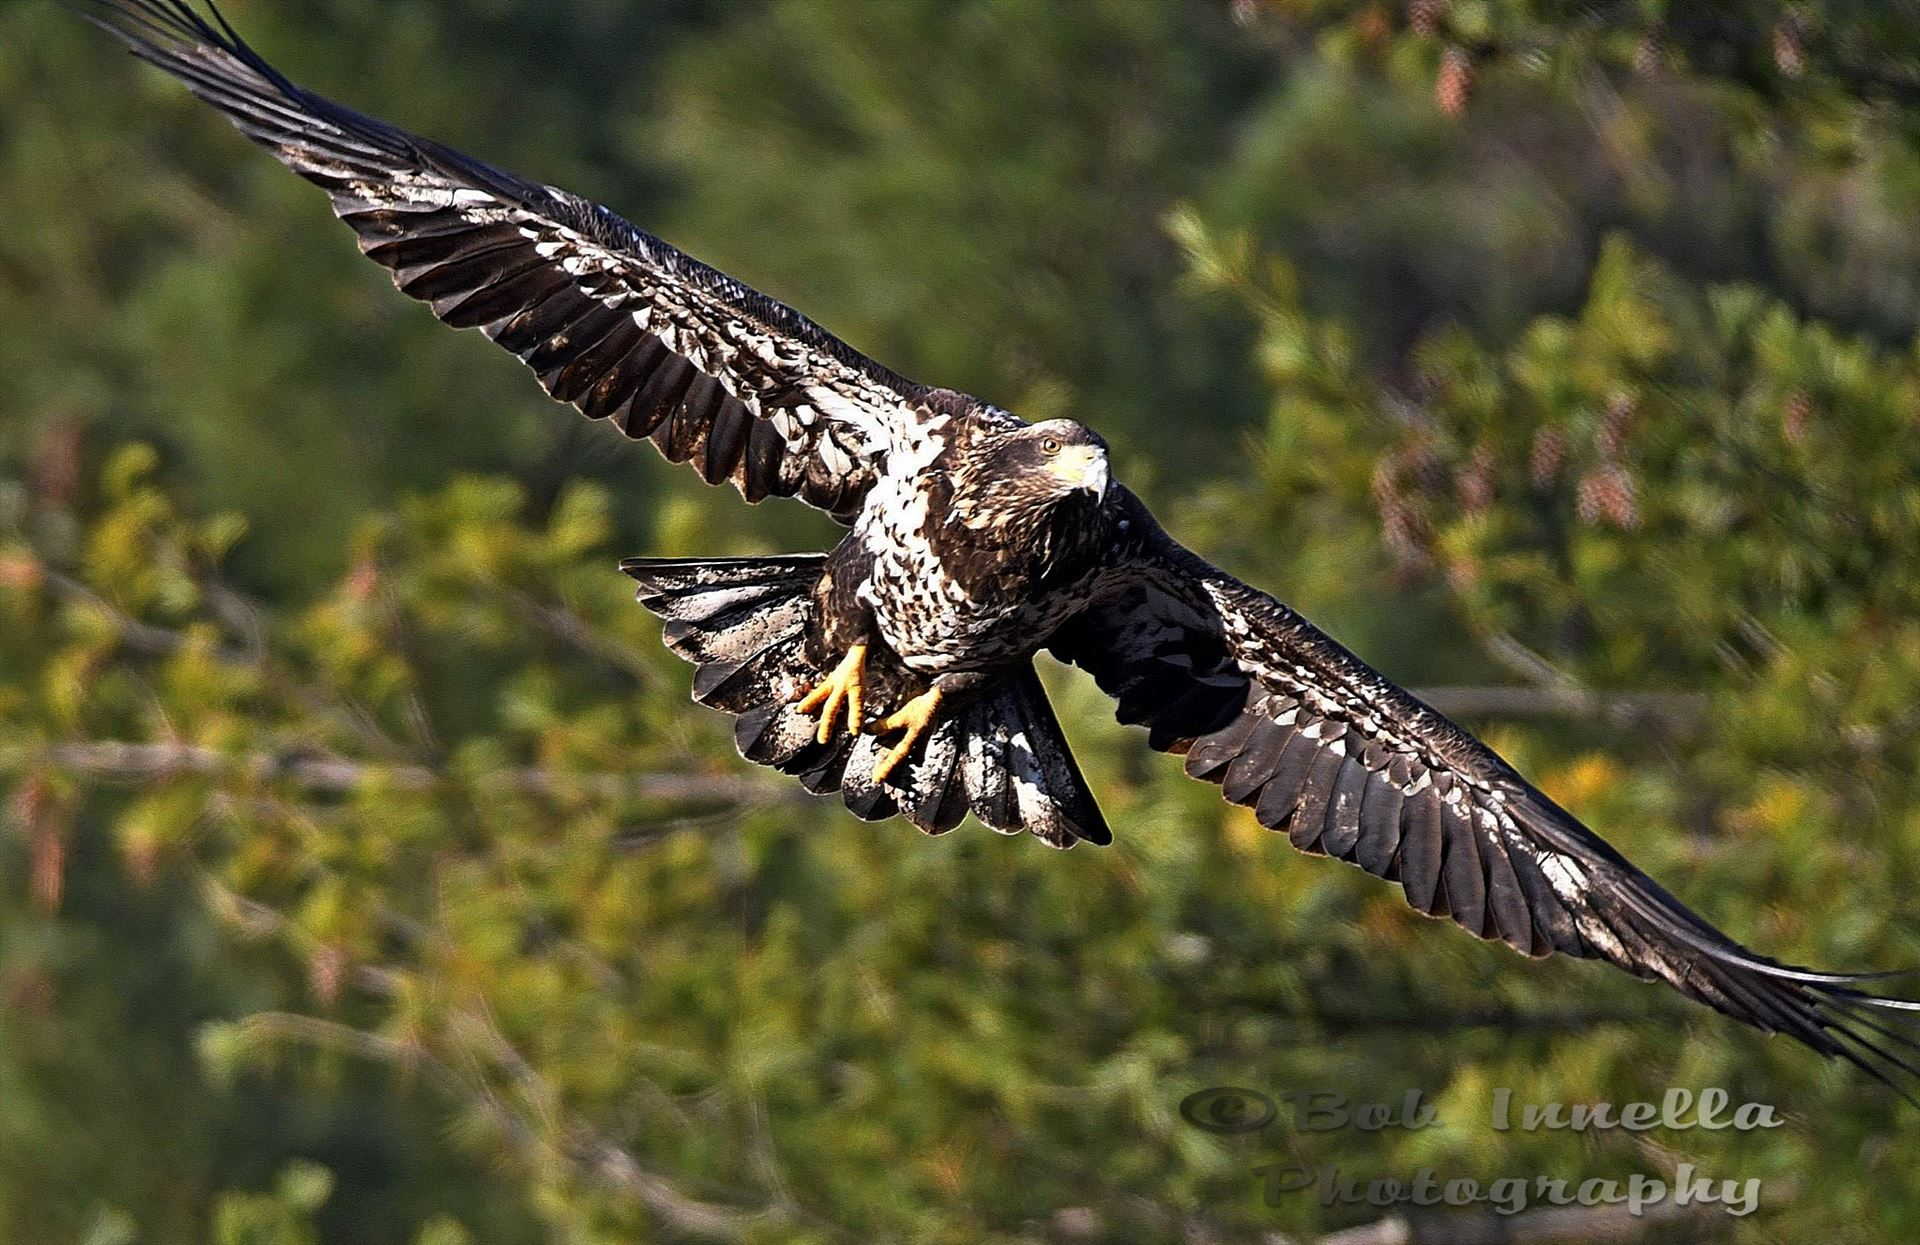 Eagle_9367 - Juvenile Bald Eagle On Mongaup River, Rio, NY by Buckmaster